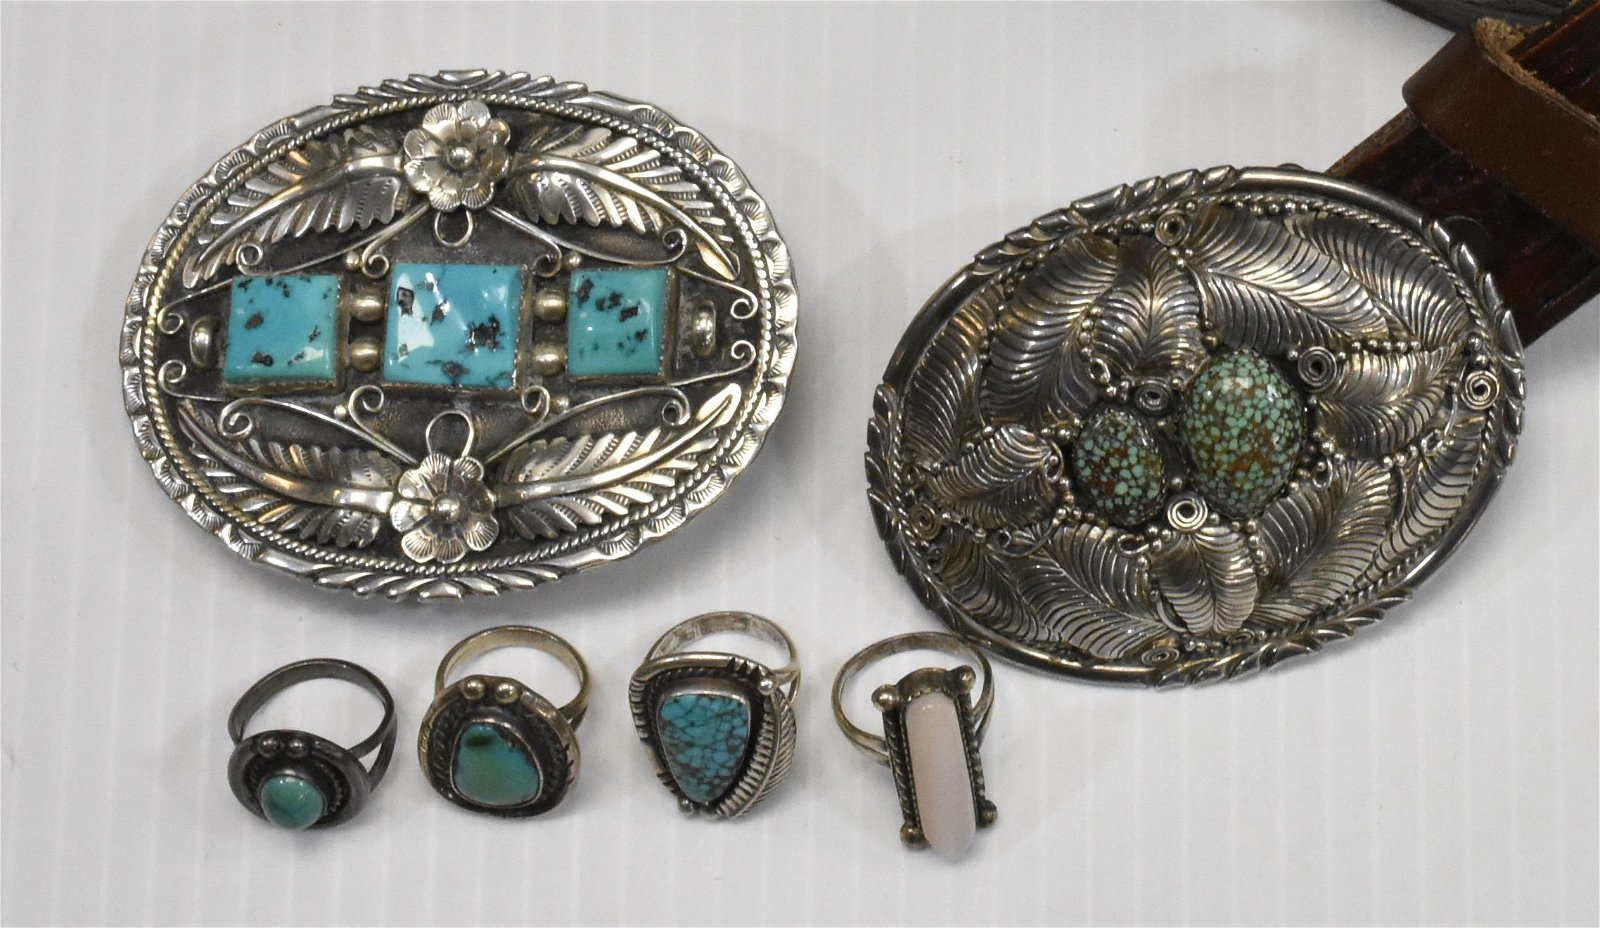 Native American Silver Buckles and Rings